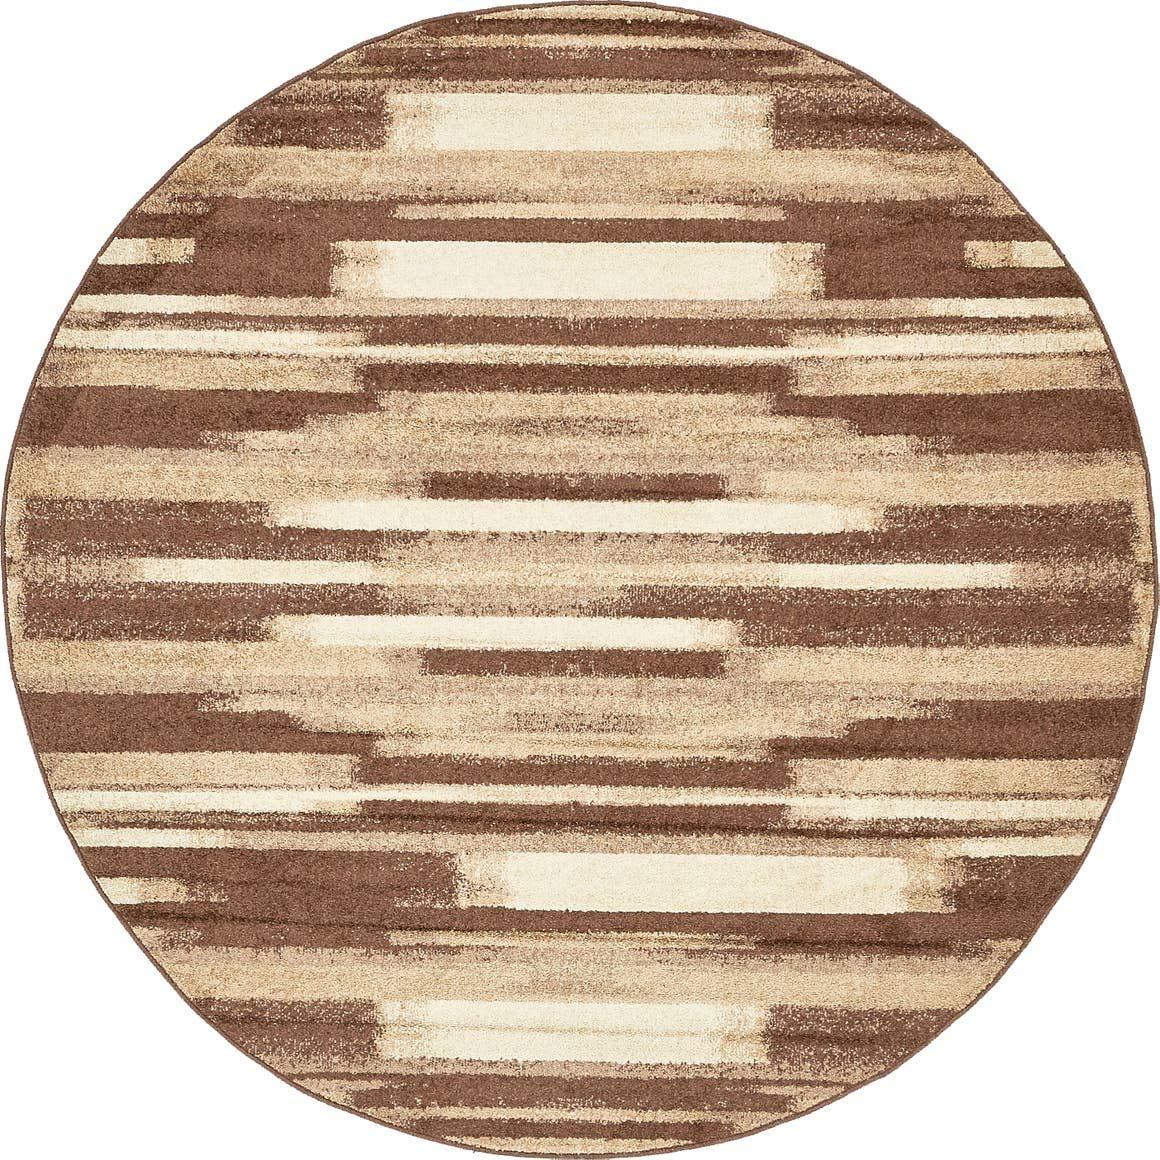 Unique Loom Autumn Collection Gradient Casual Warm Toned Brown Round Rug 8 0 x 8 0